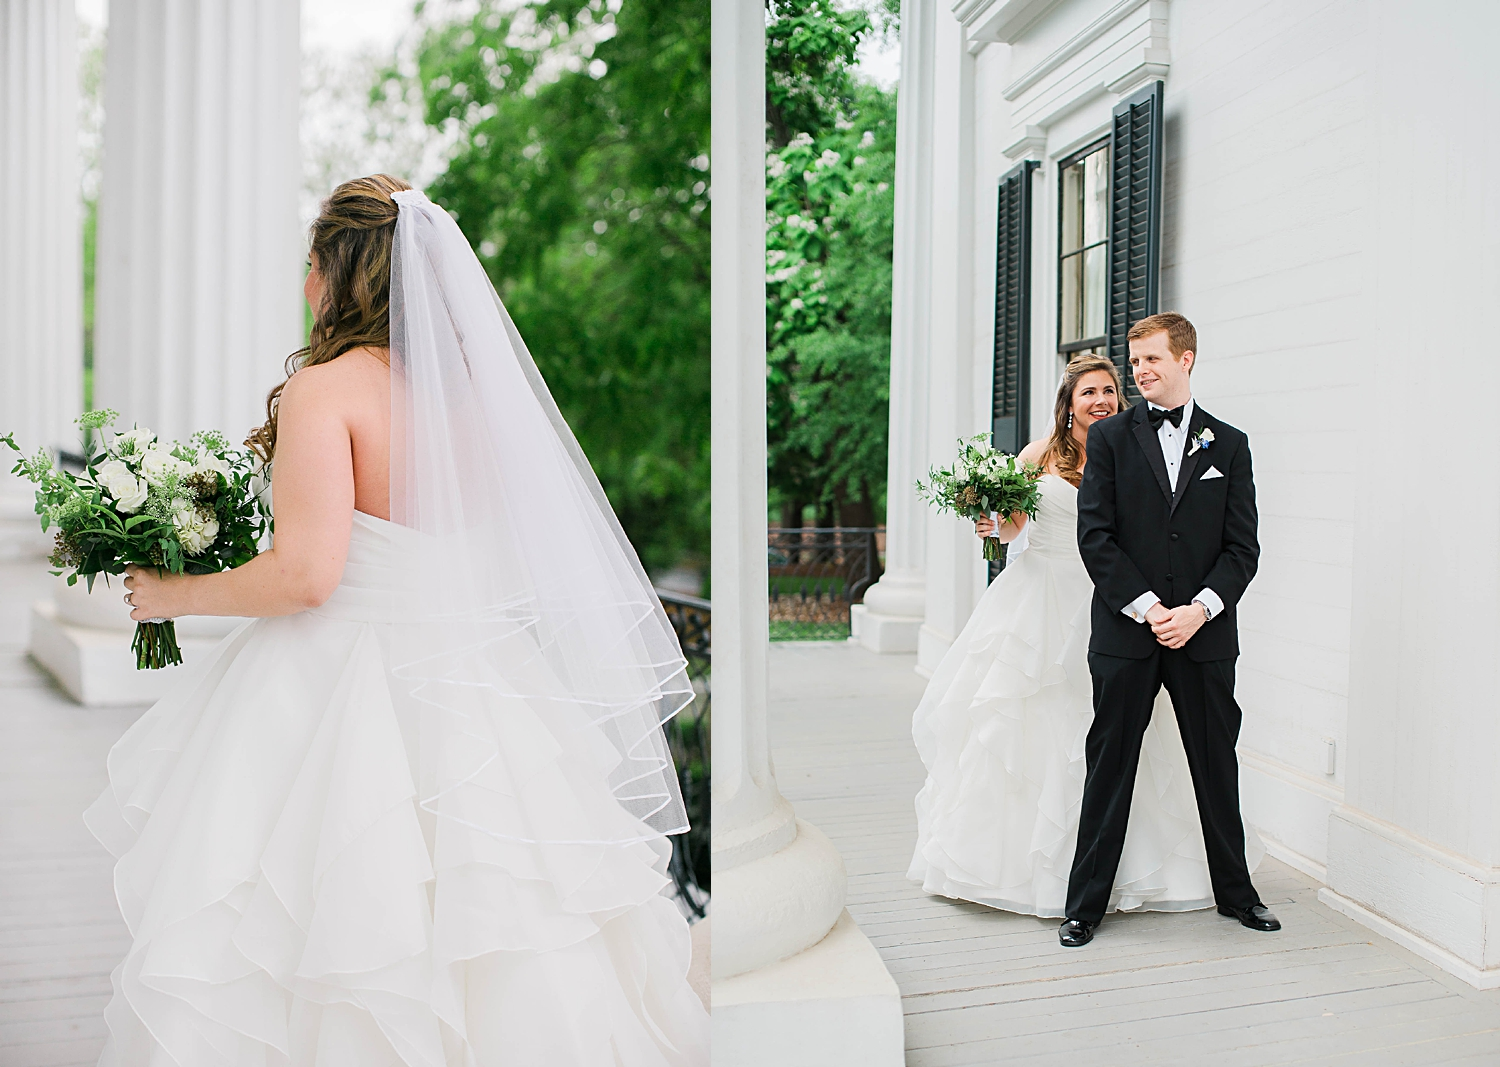 Taylor-Grady-House-Athens-Georgia-Wedding-Photographer-JB-Marie-Photography